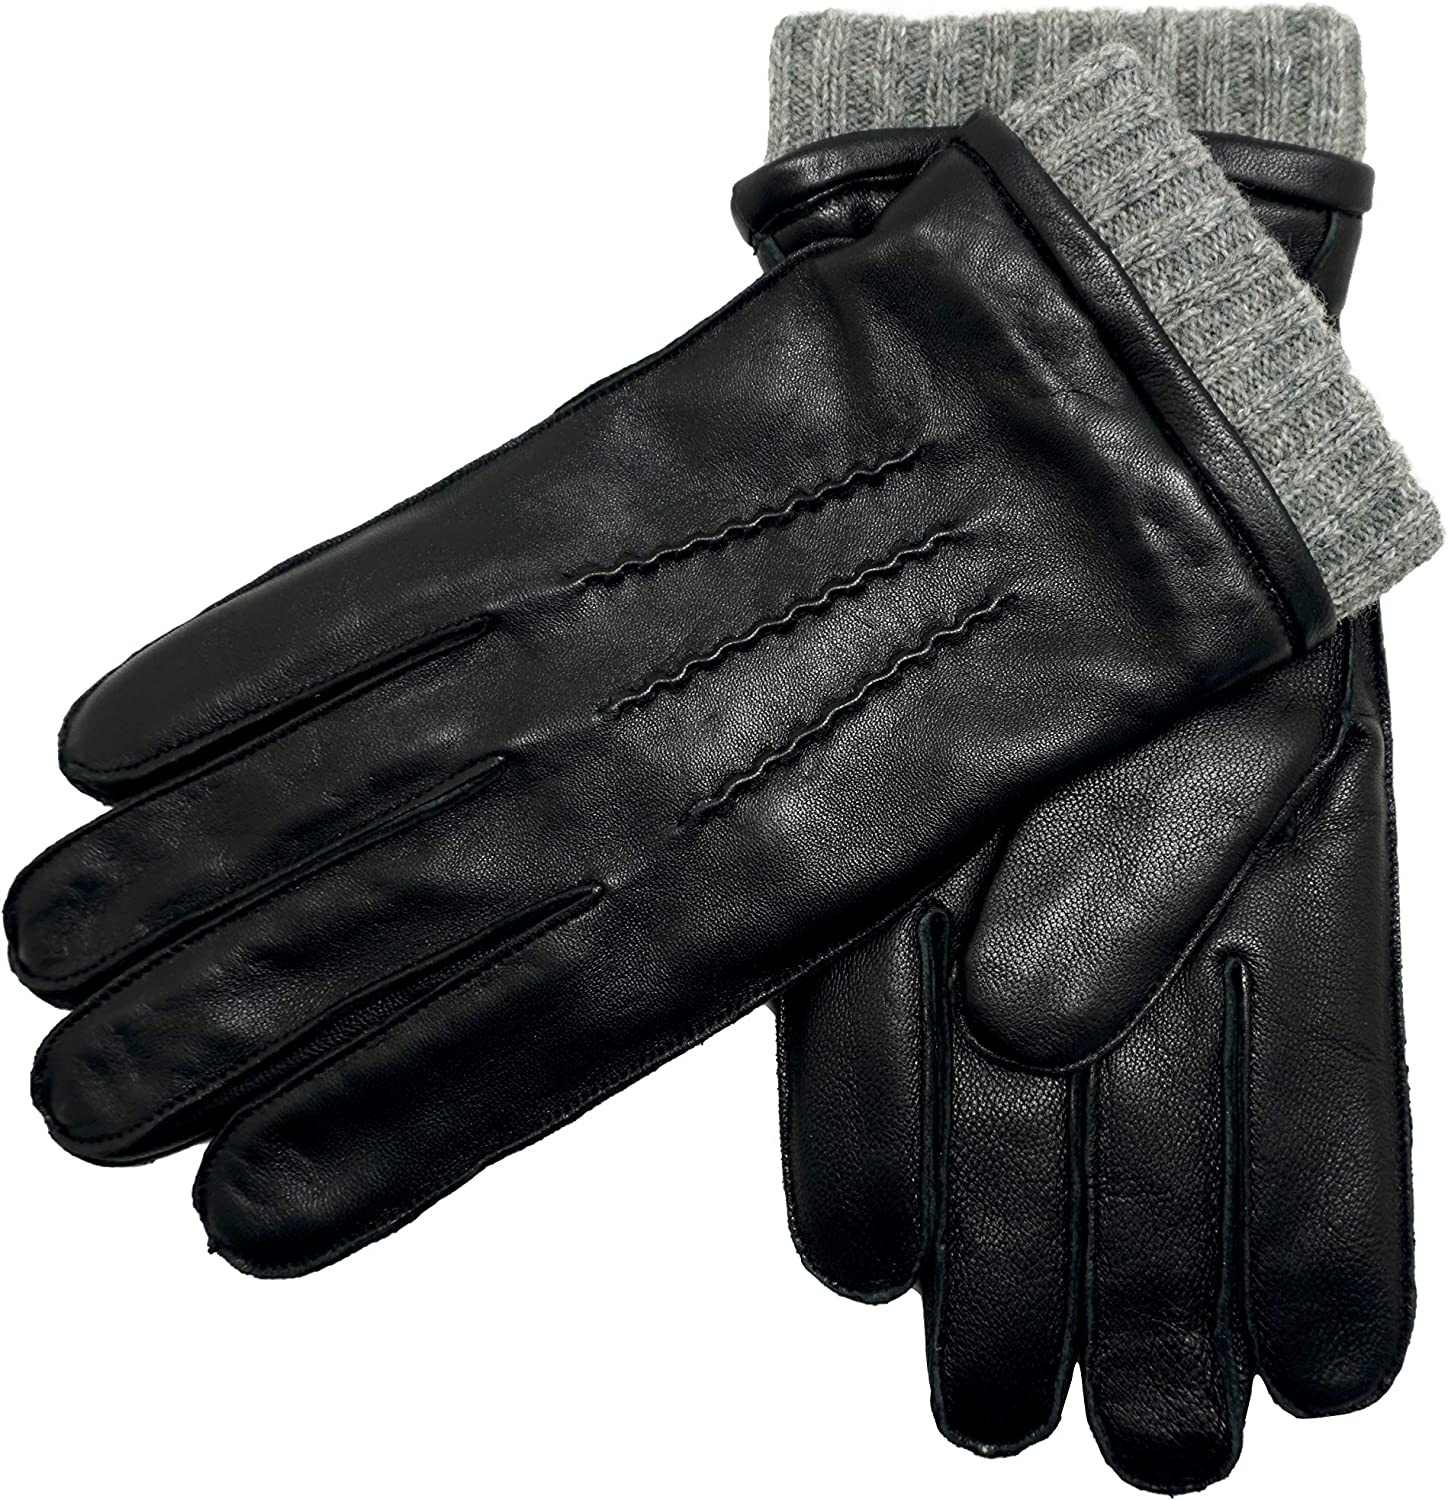 YISEVEN Winter Limited price Men's Latest item Three Point Leather Sheepskin Glo Warm